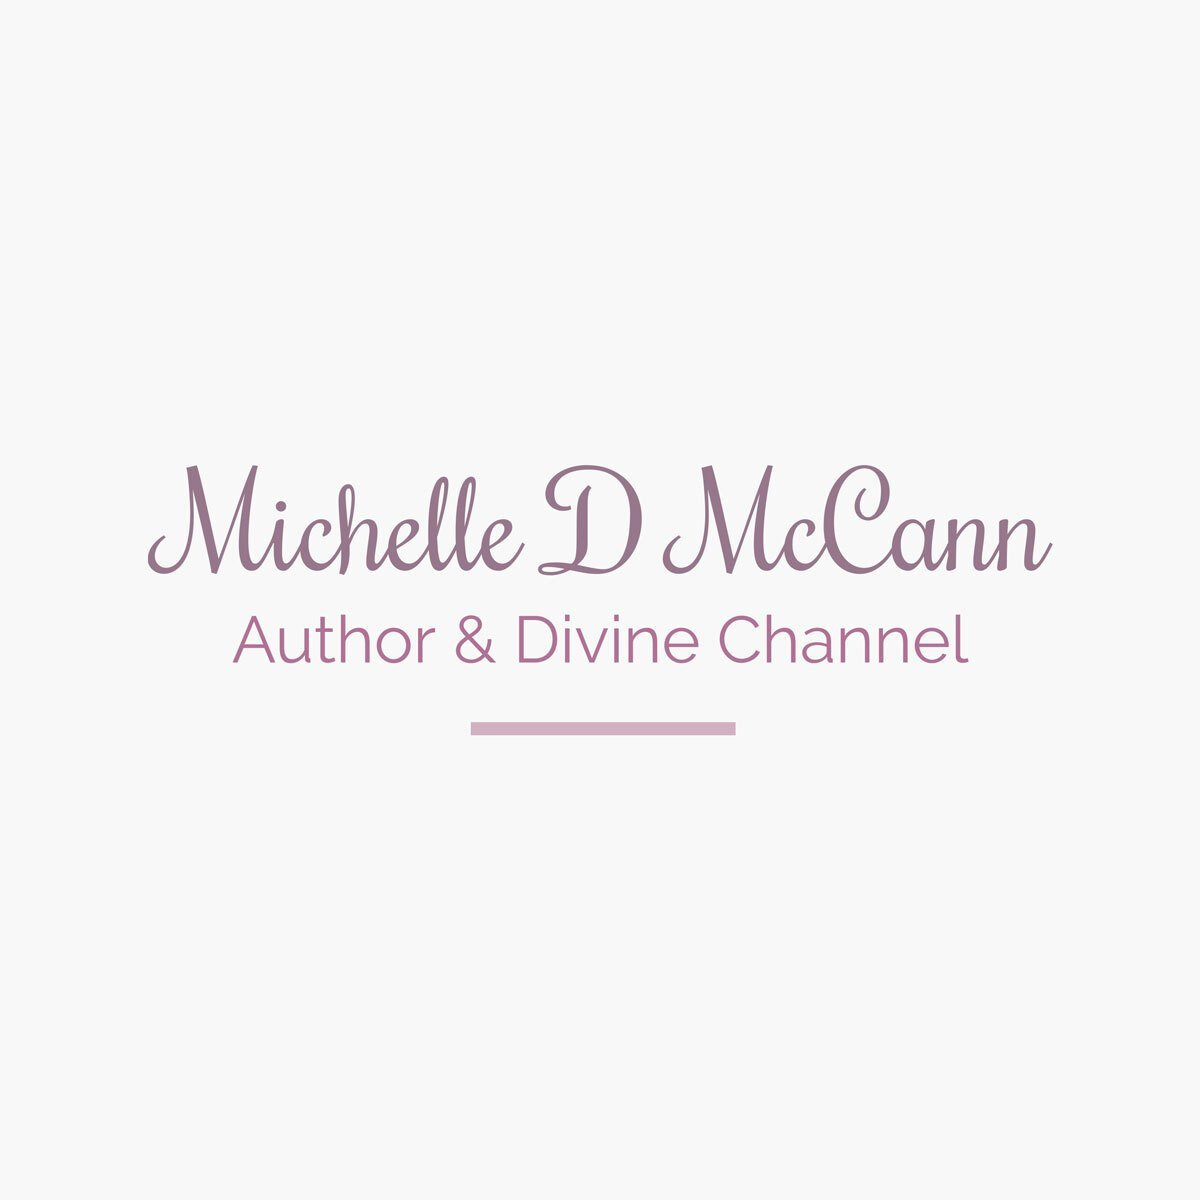 A logo design created by BrandSwan for Michelle D McCann